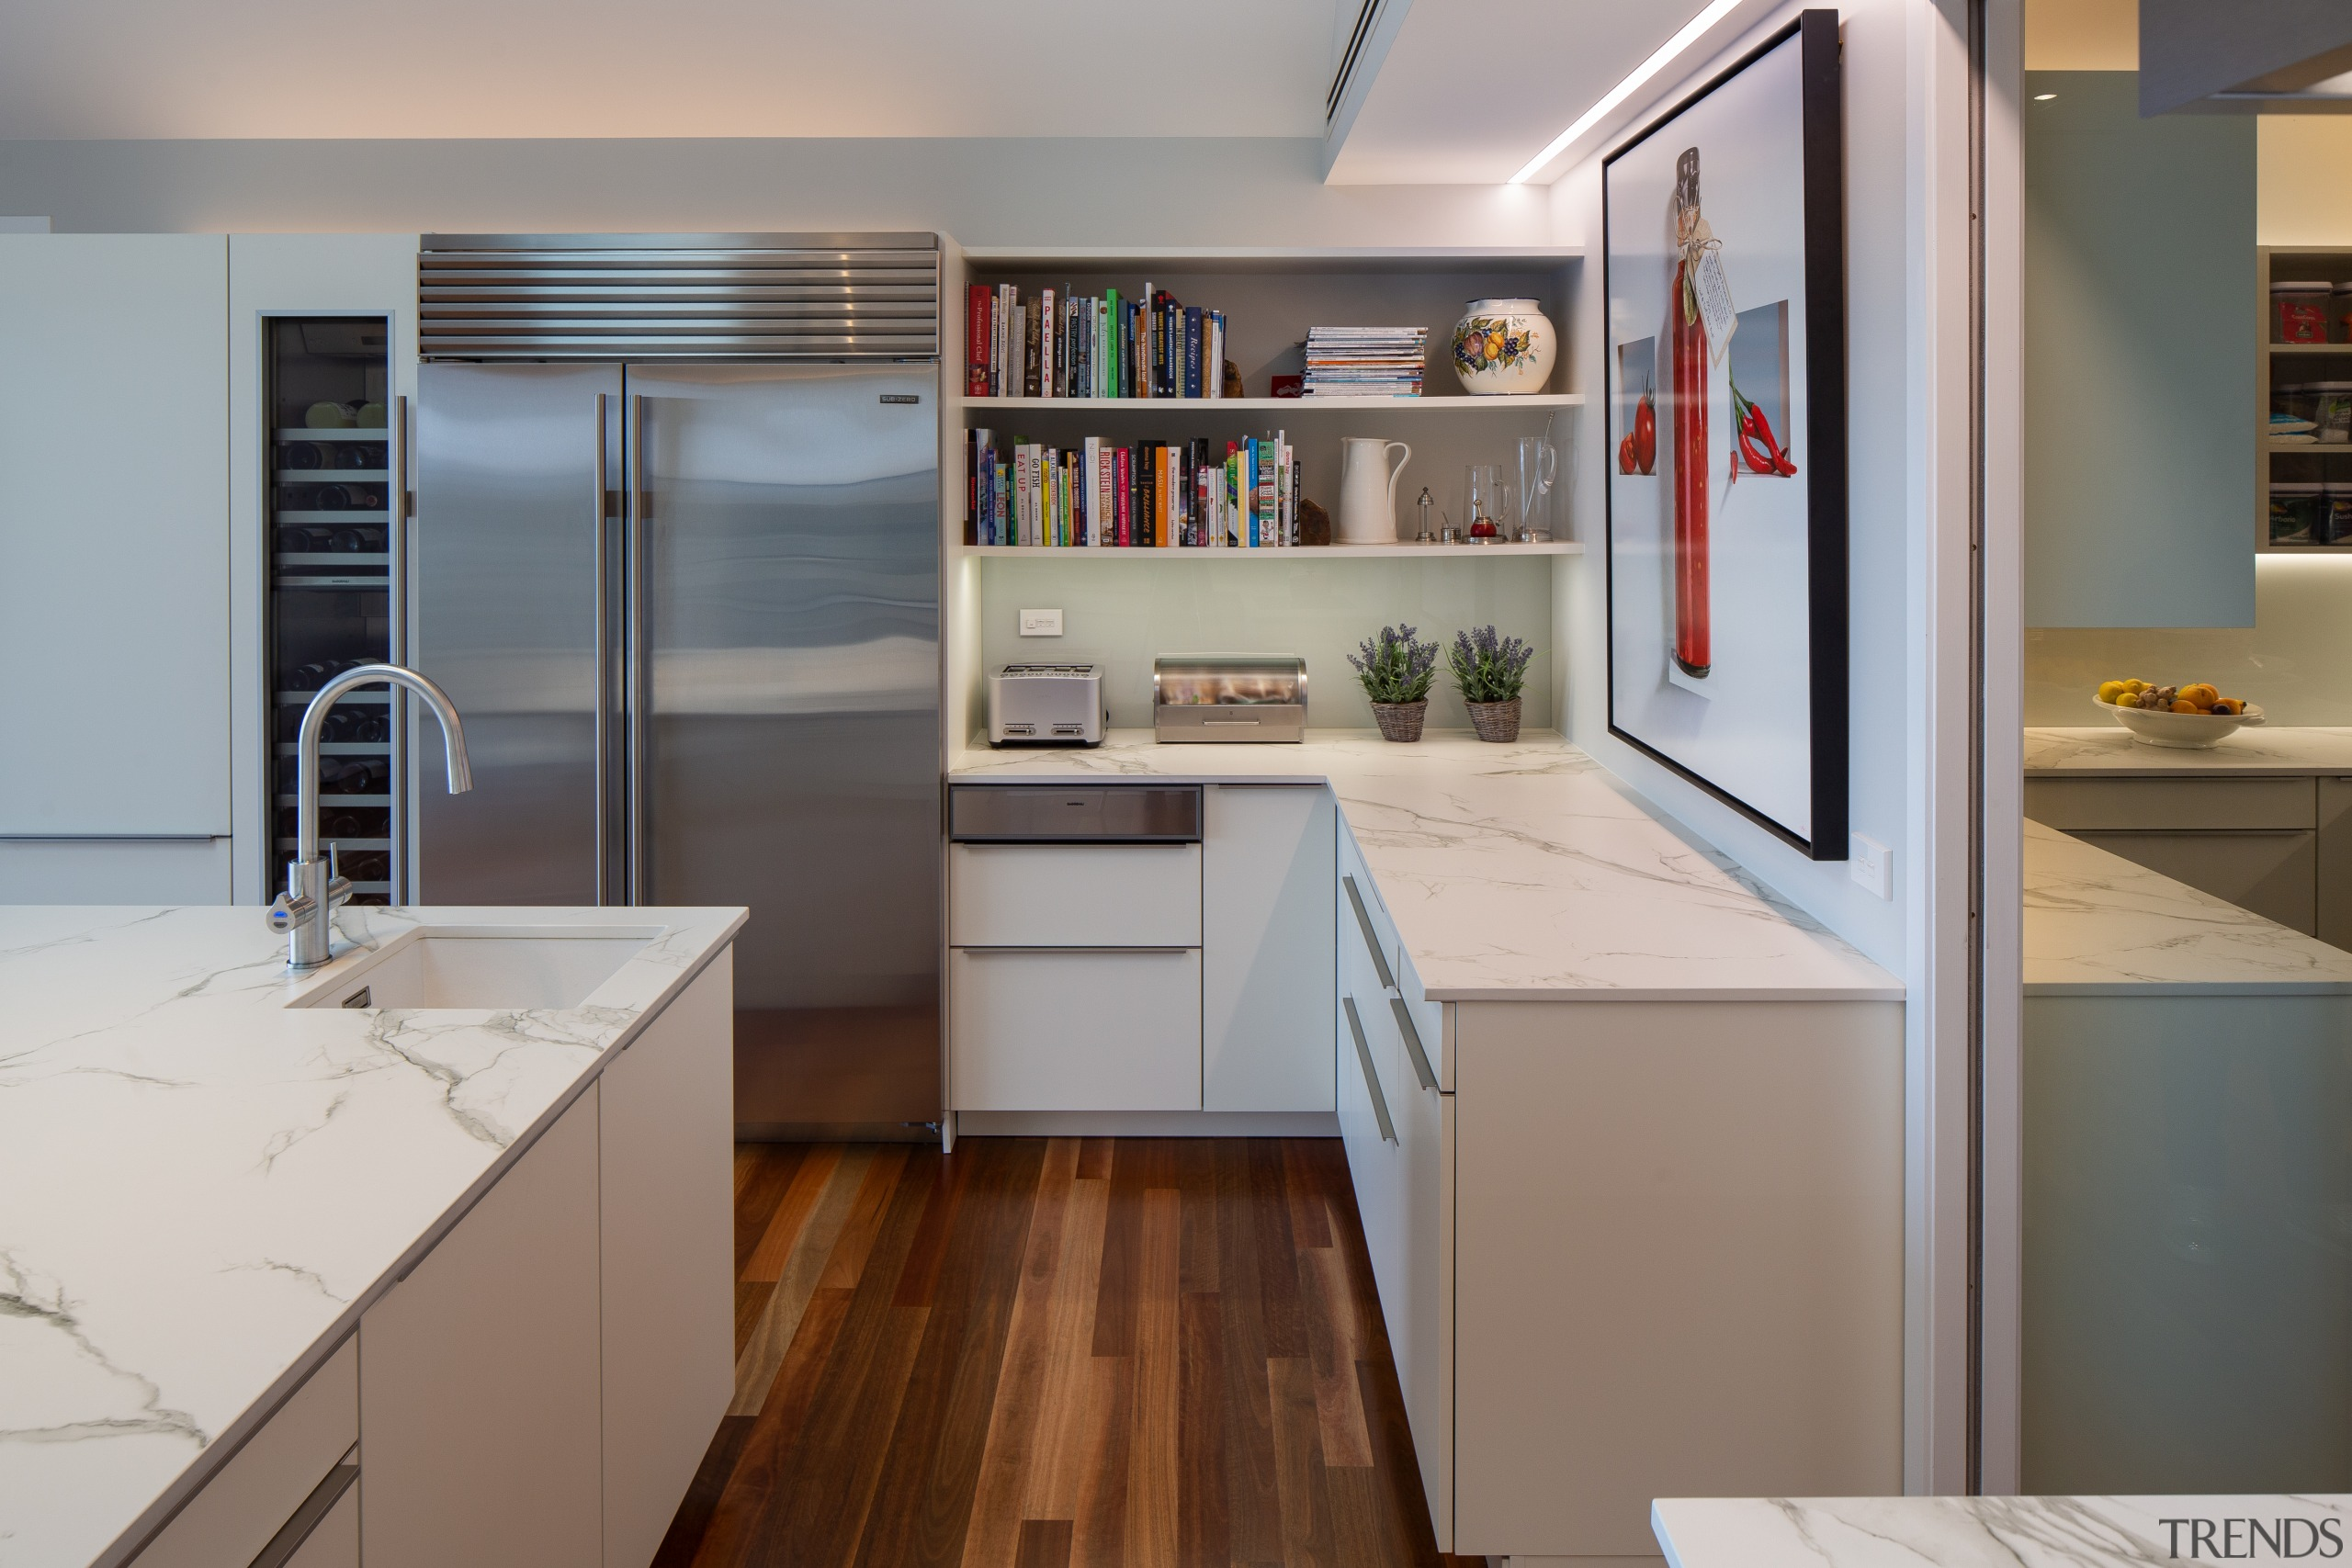 This new kitchen by German Kitchens offers plenty architecture, building, cabinetry, ceiling, countertop, cupboard, floor, flooring, furniture, home, house, interior design, kitchen, material property, plywood, property, real estate, room, shelf, shelving, wood flooring, gray